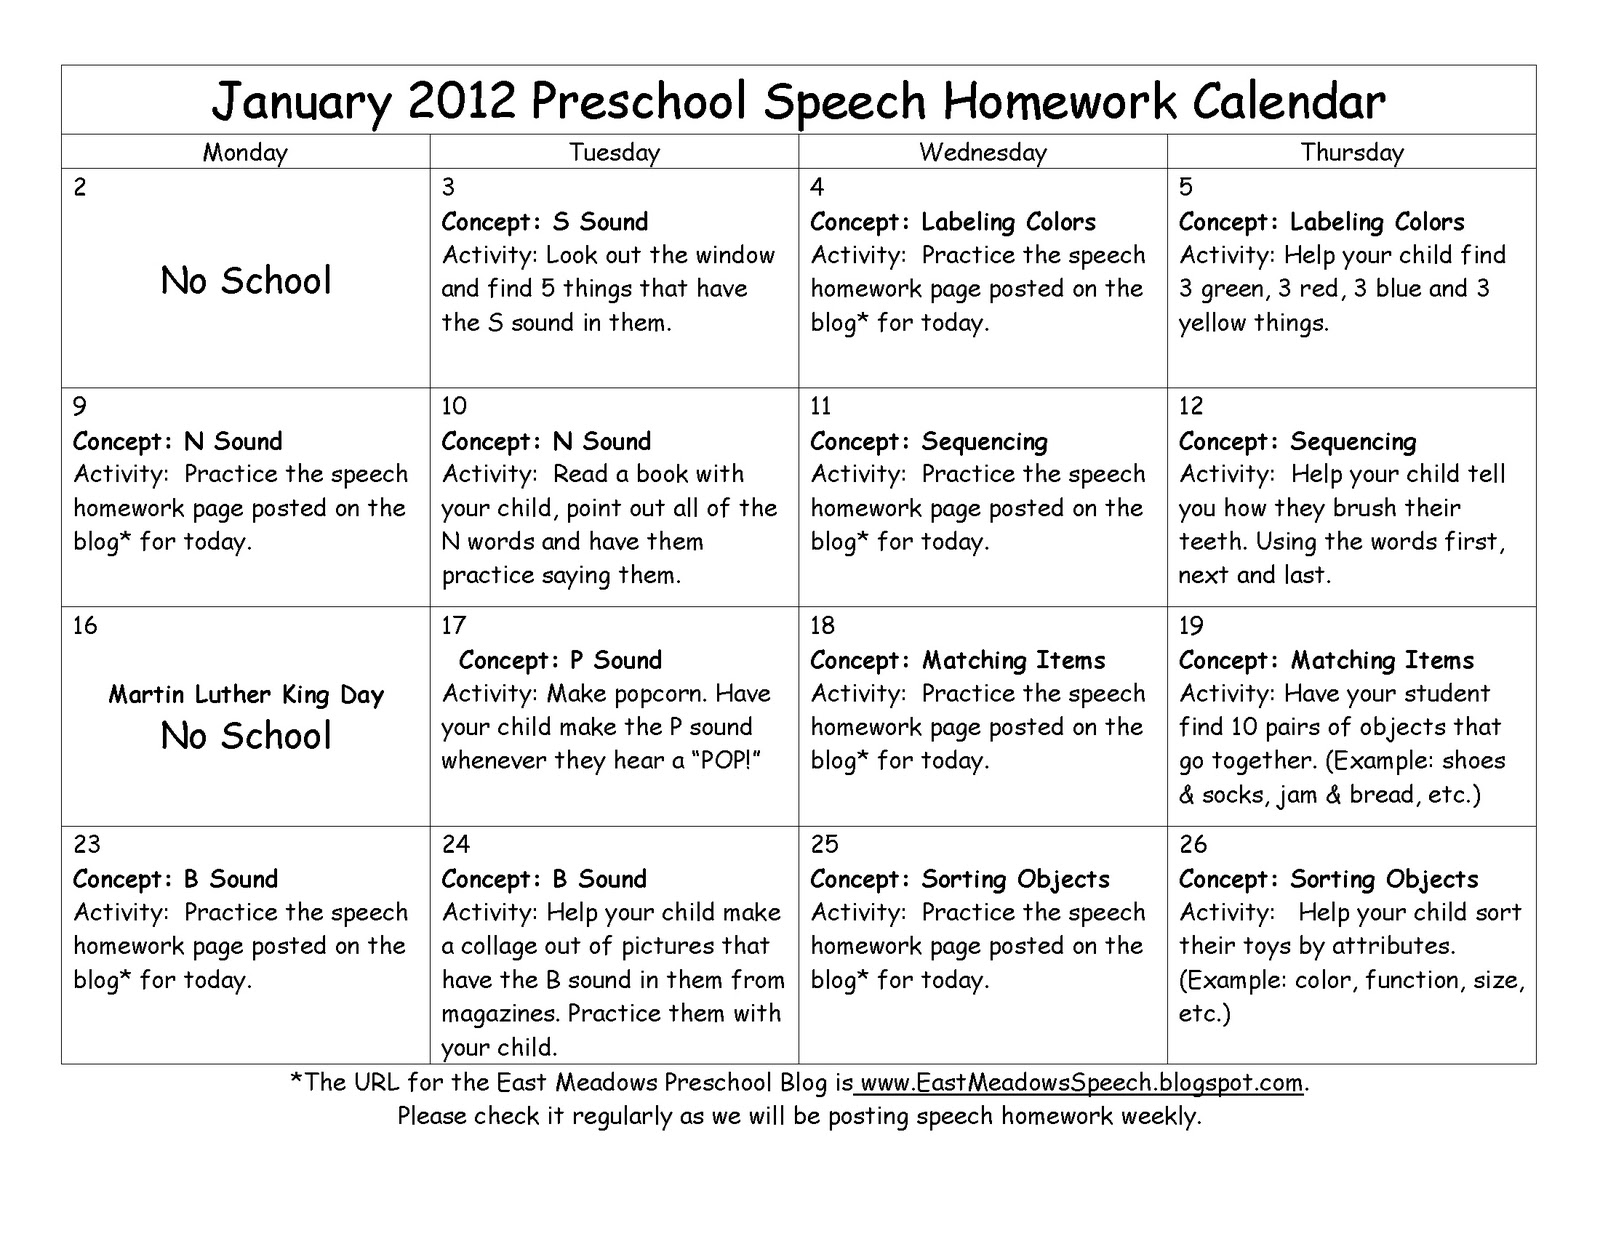 East Meadows Speech January Preschool Speech Homework Week 1